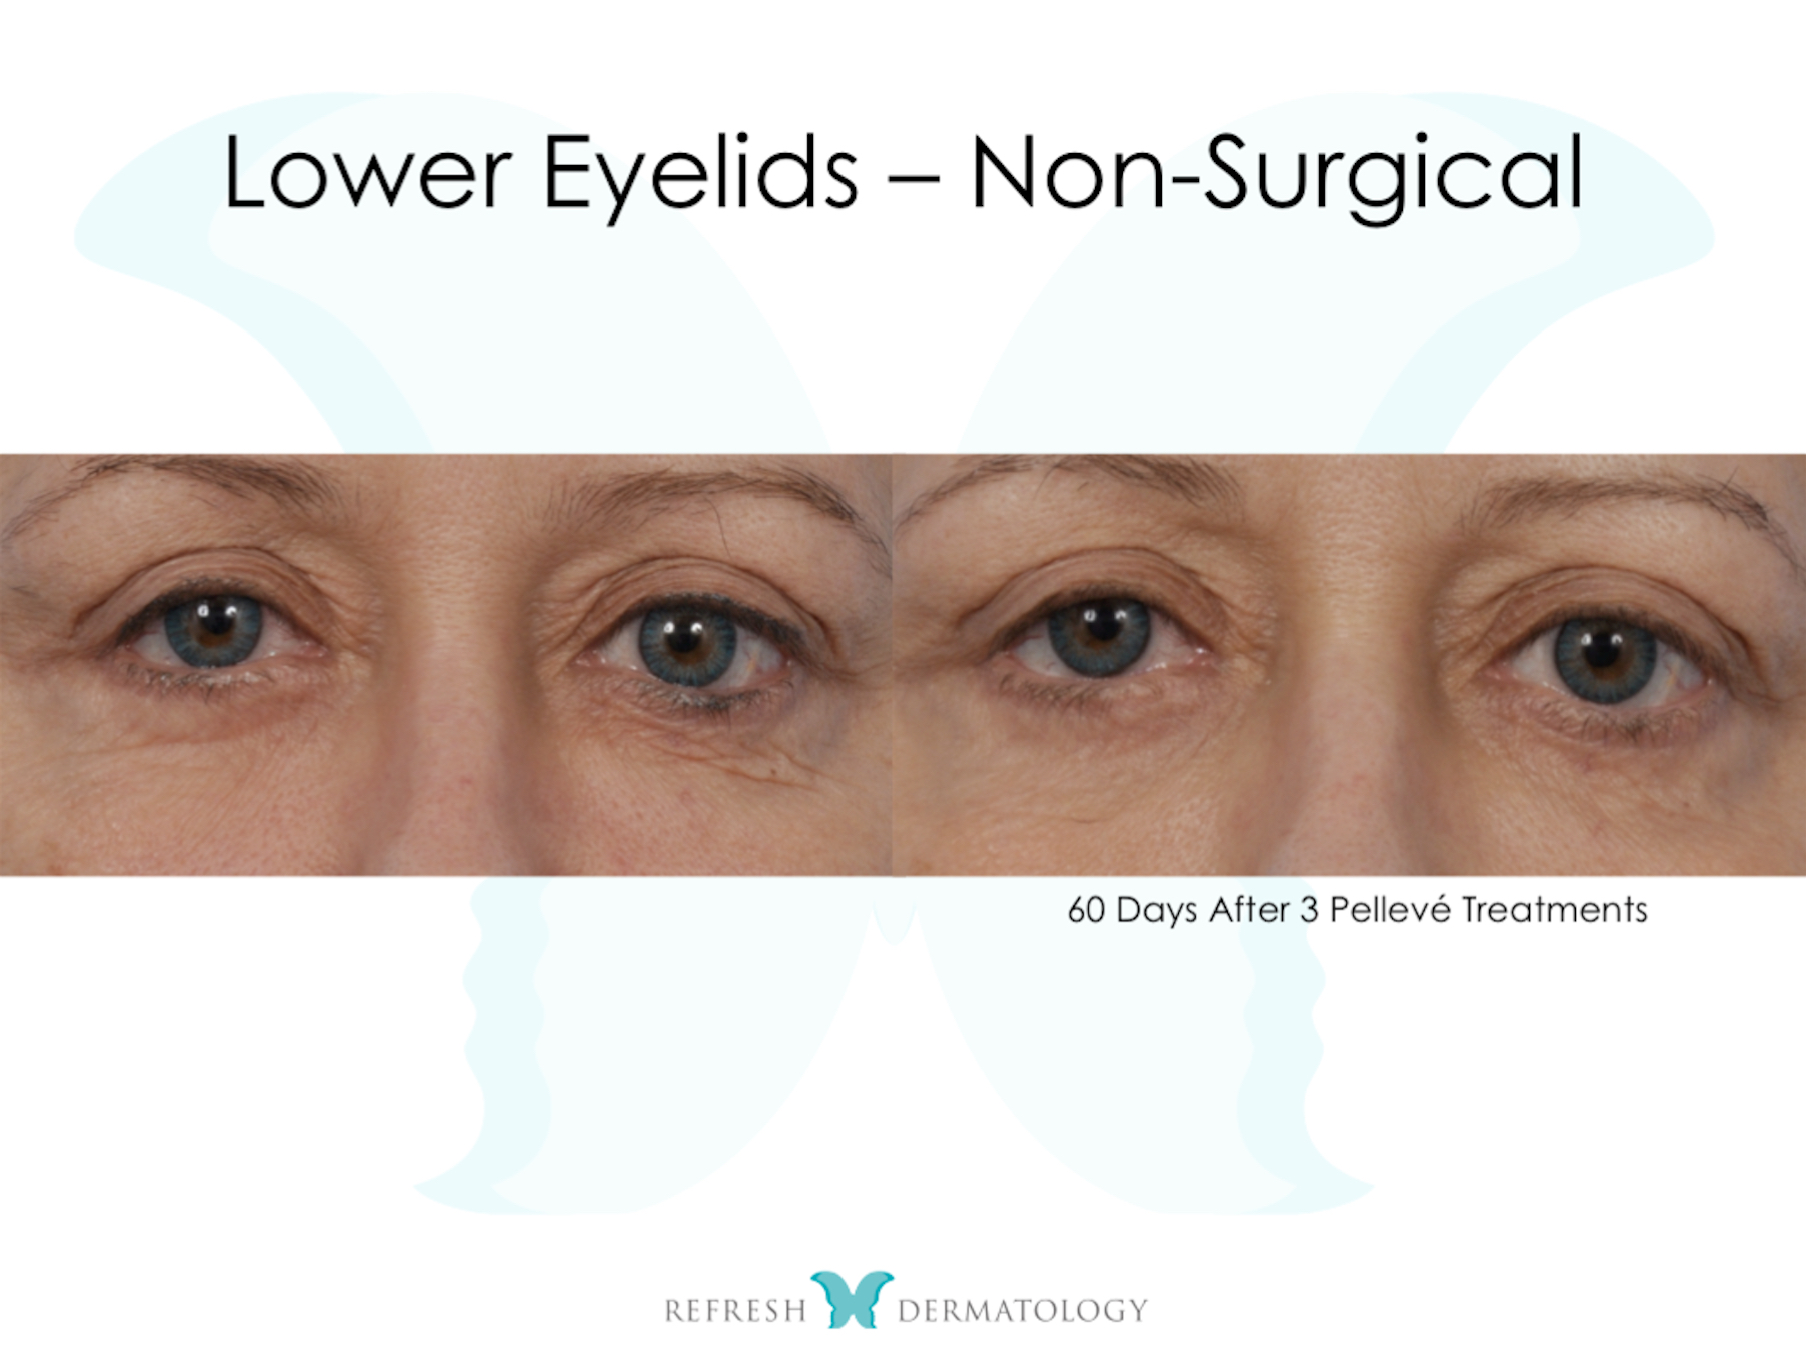 Lower Eyelids Non Surgical | Dr. Suneel Chilukuri